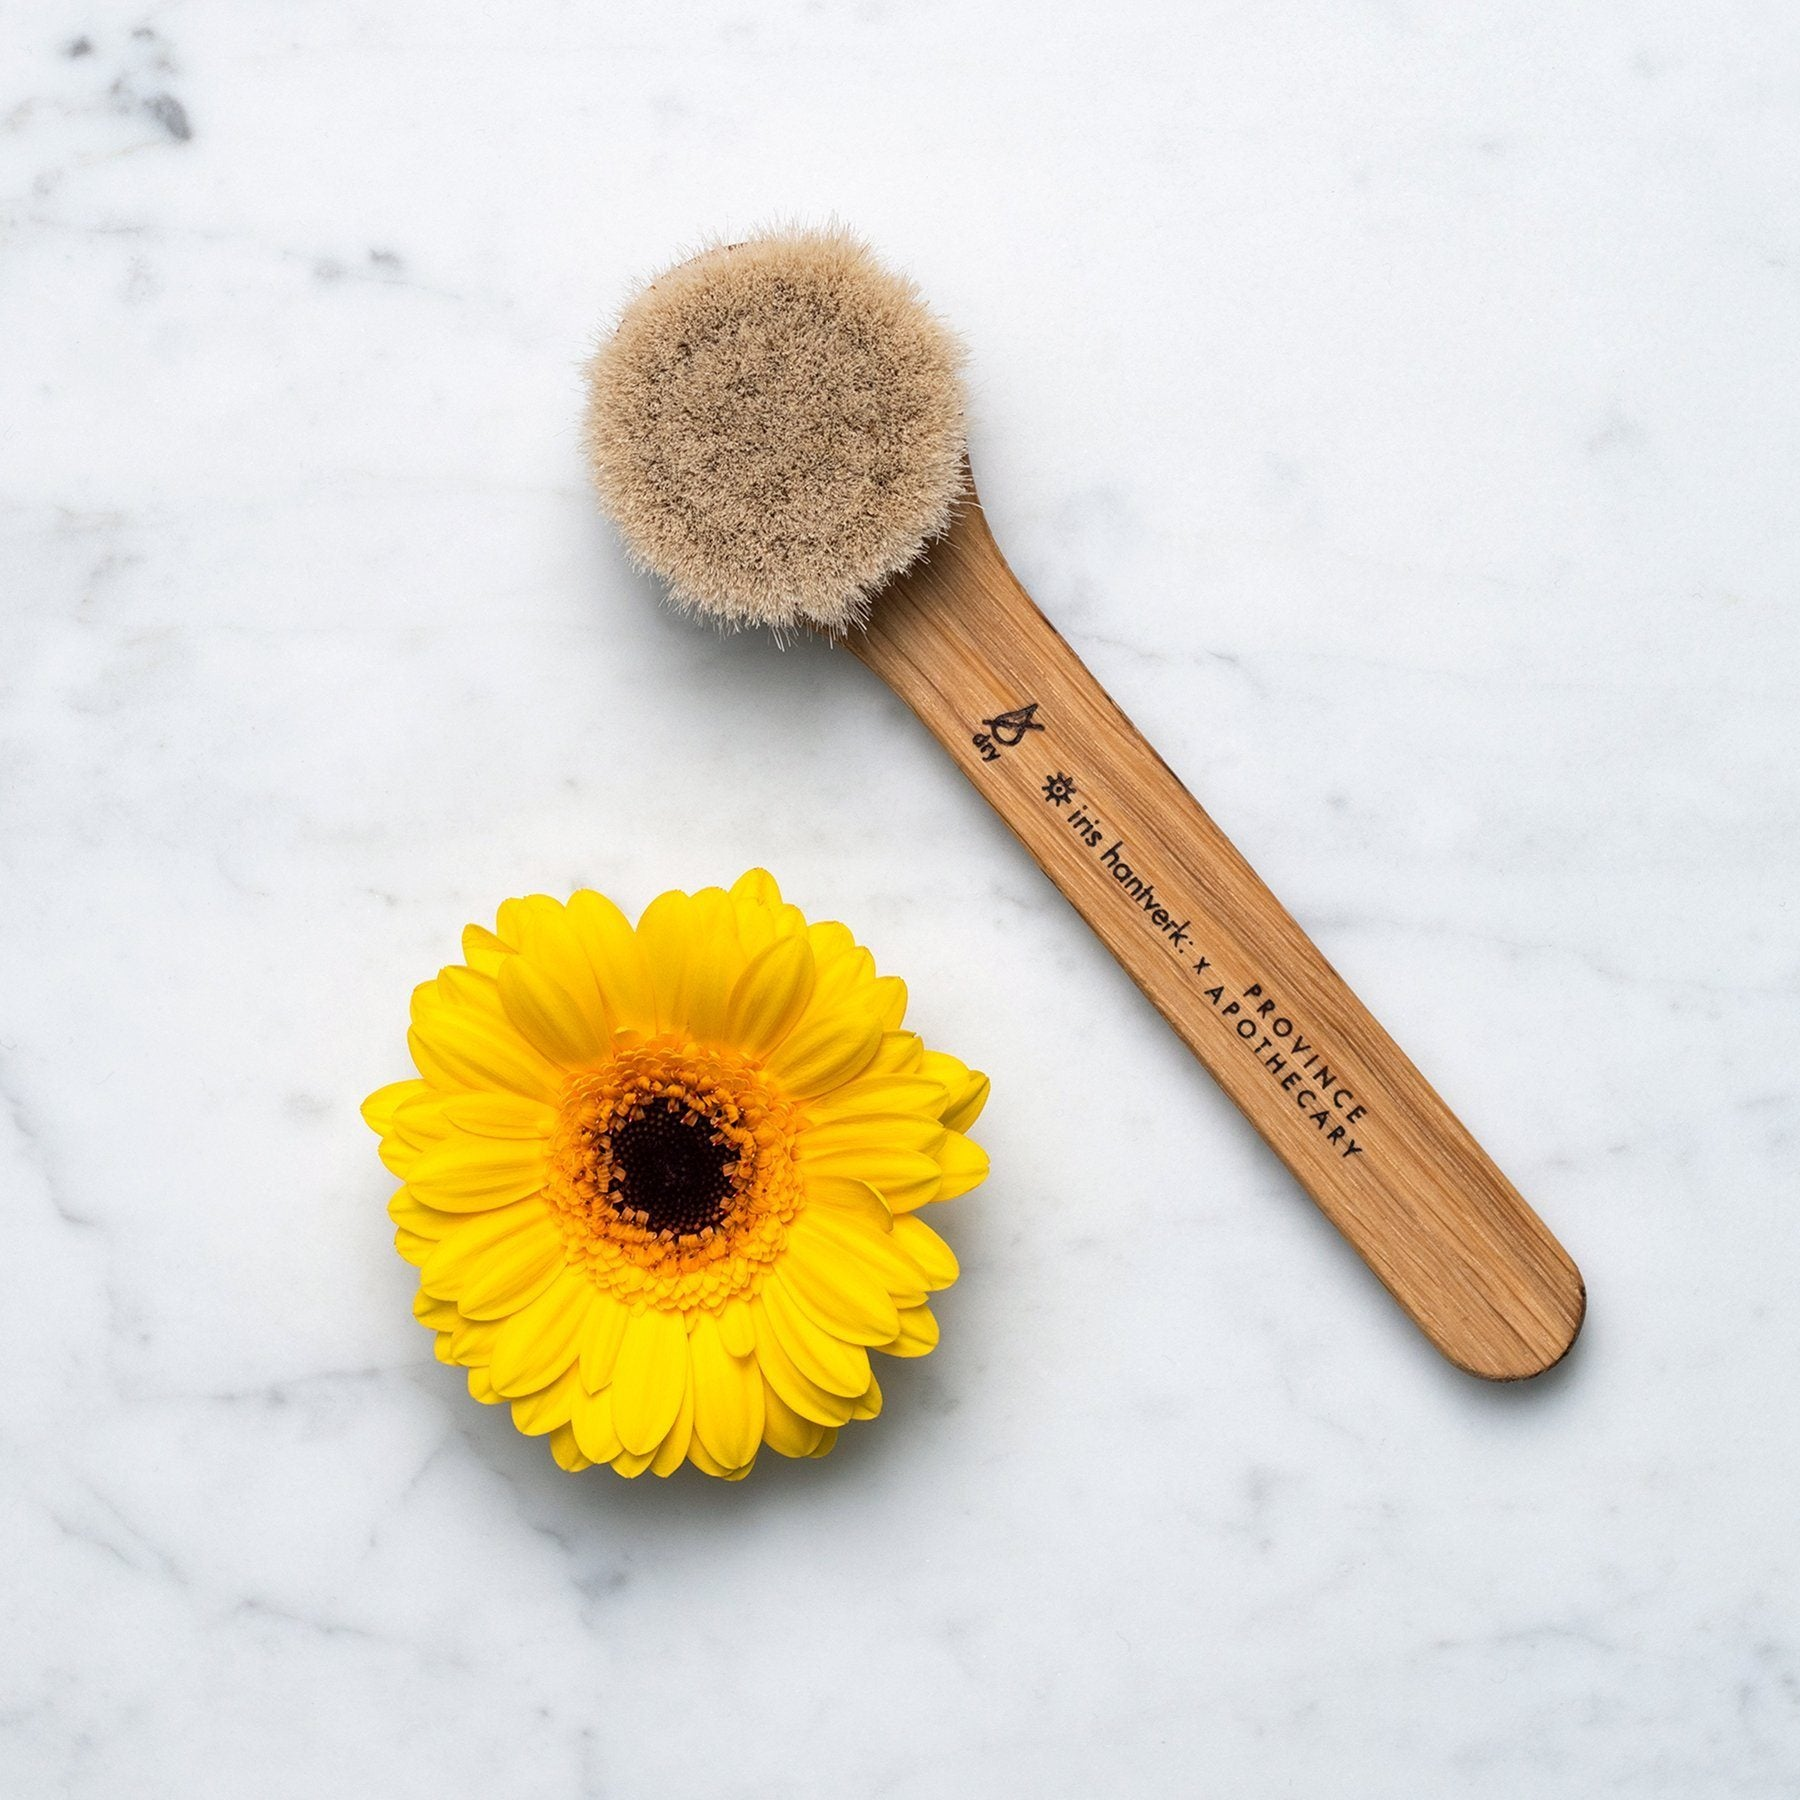 Daily Glow Facial Dry Brush - The Lake